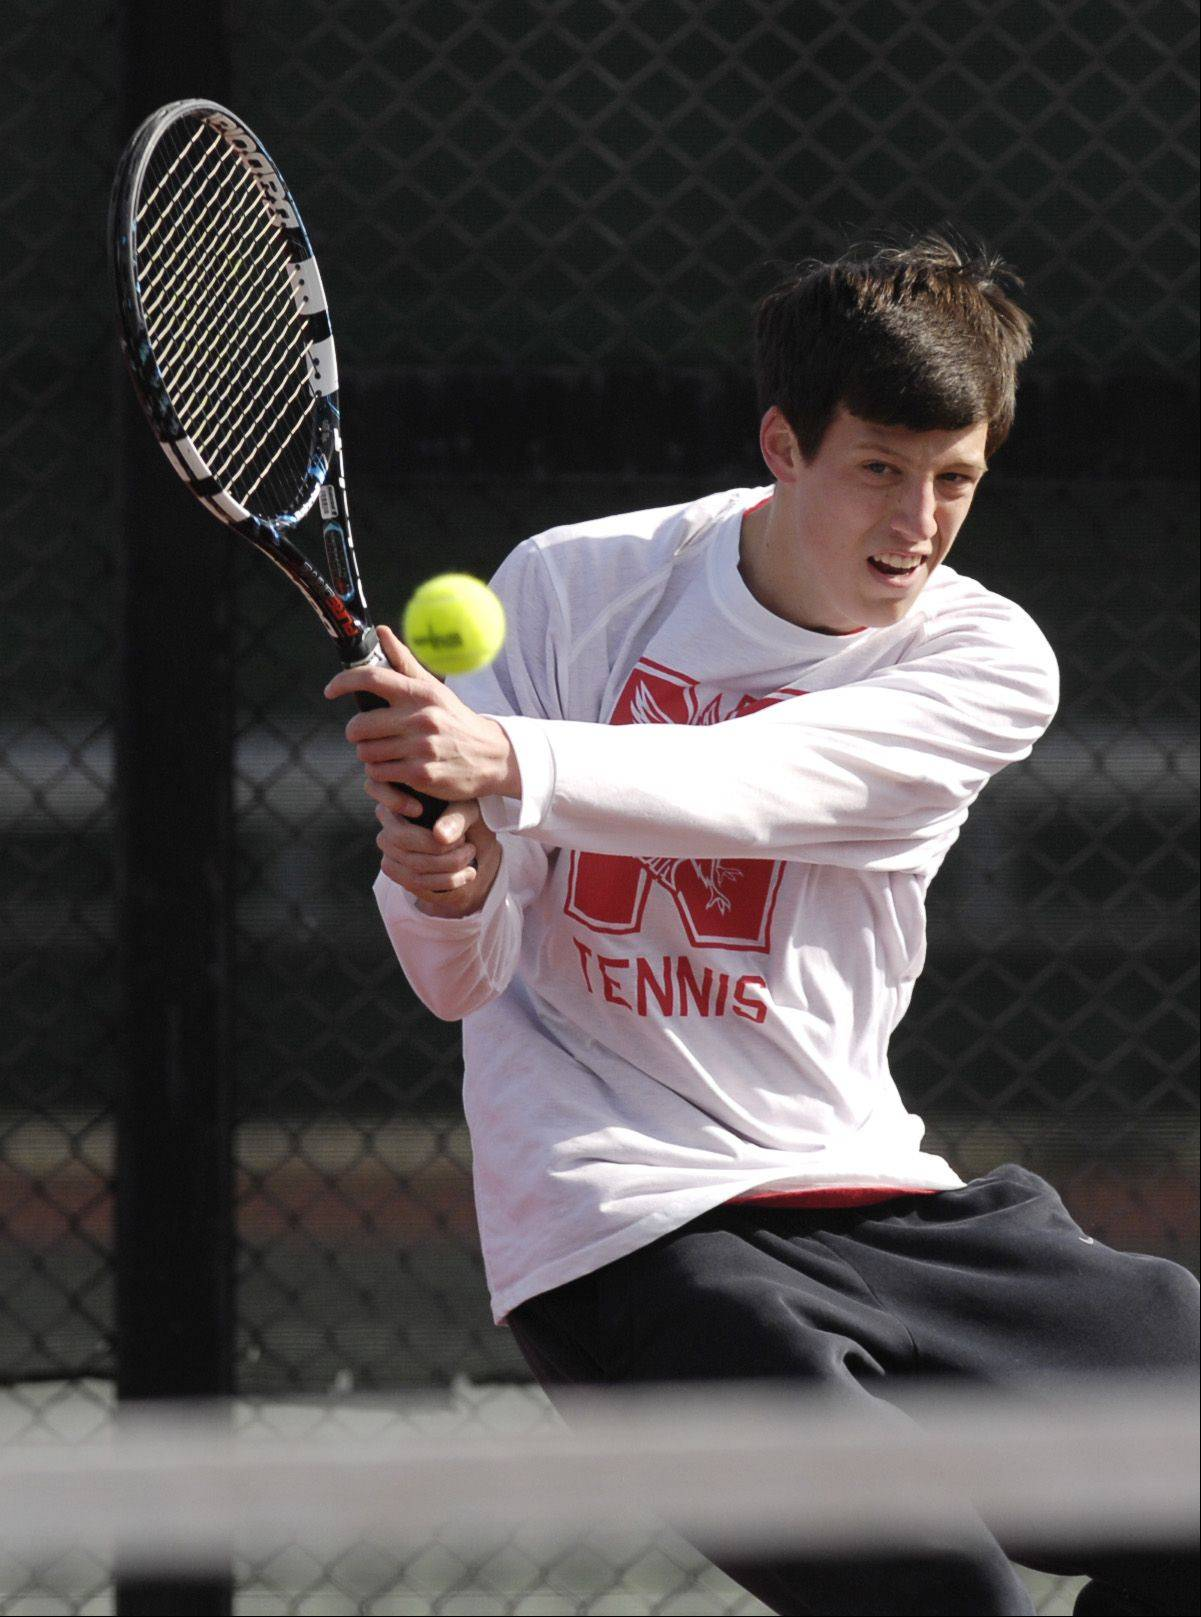 Danny Albert of Naperville Central plays Matt Krzyzaniak of Glenbard North during a varsity tennis match in Carol Stream, Thursday.